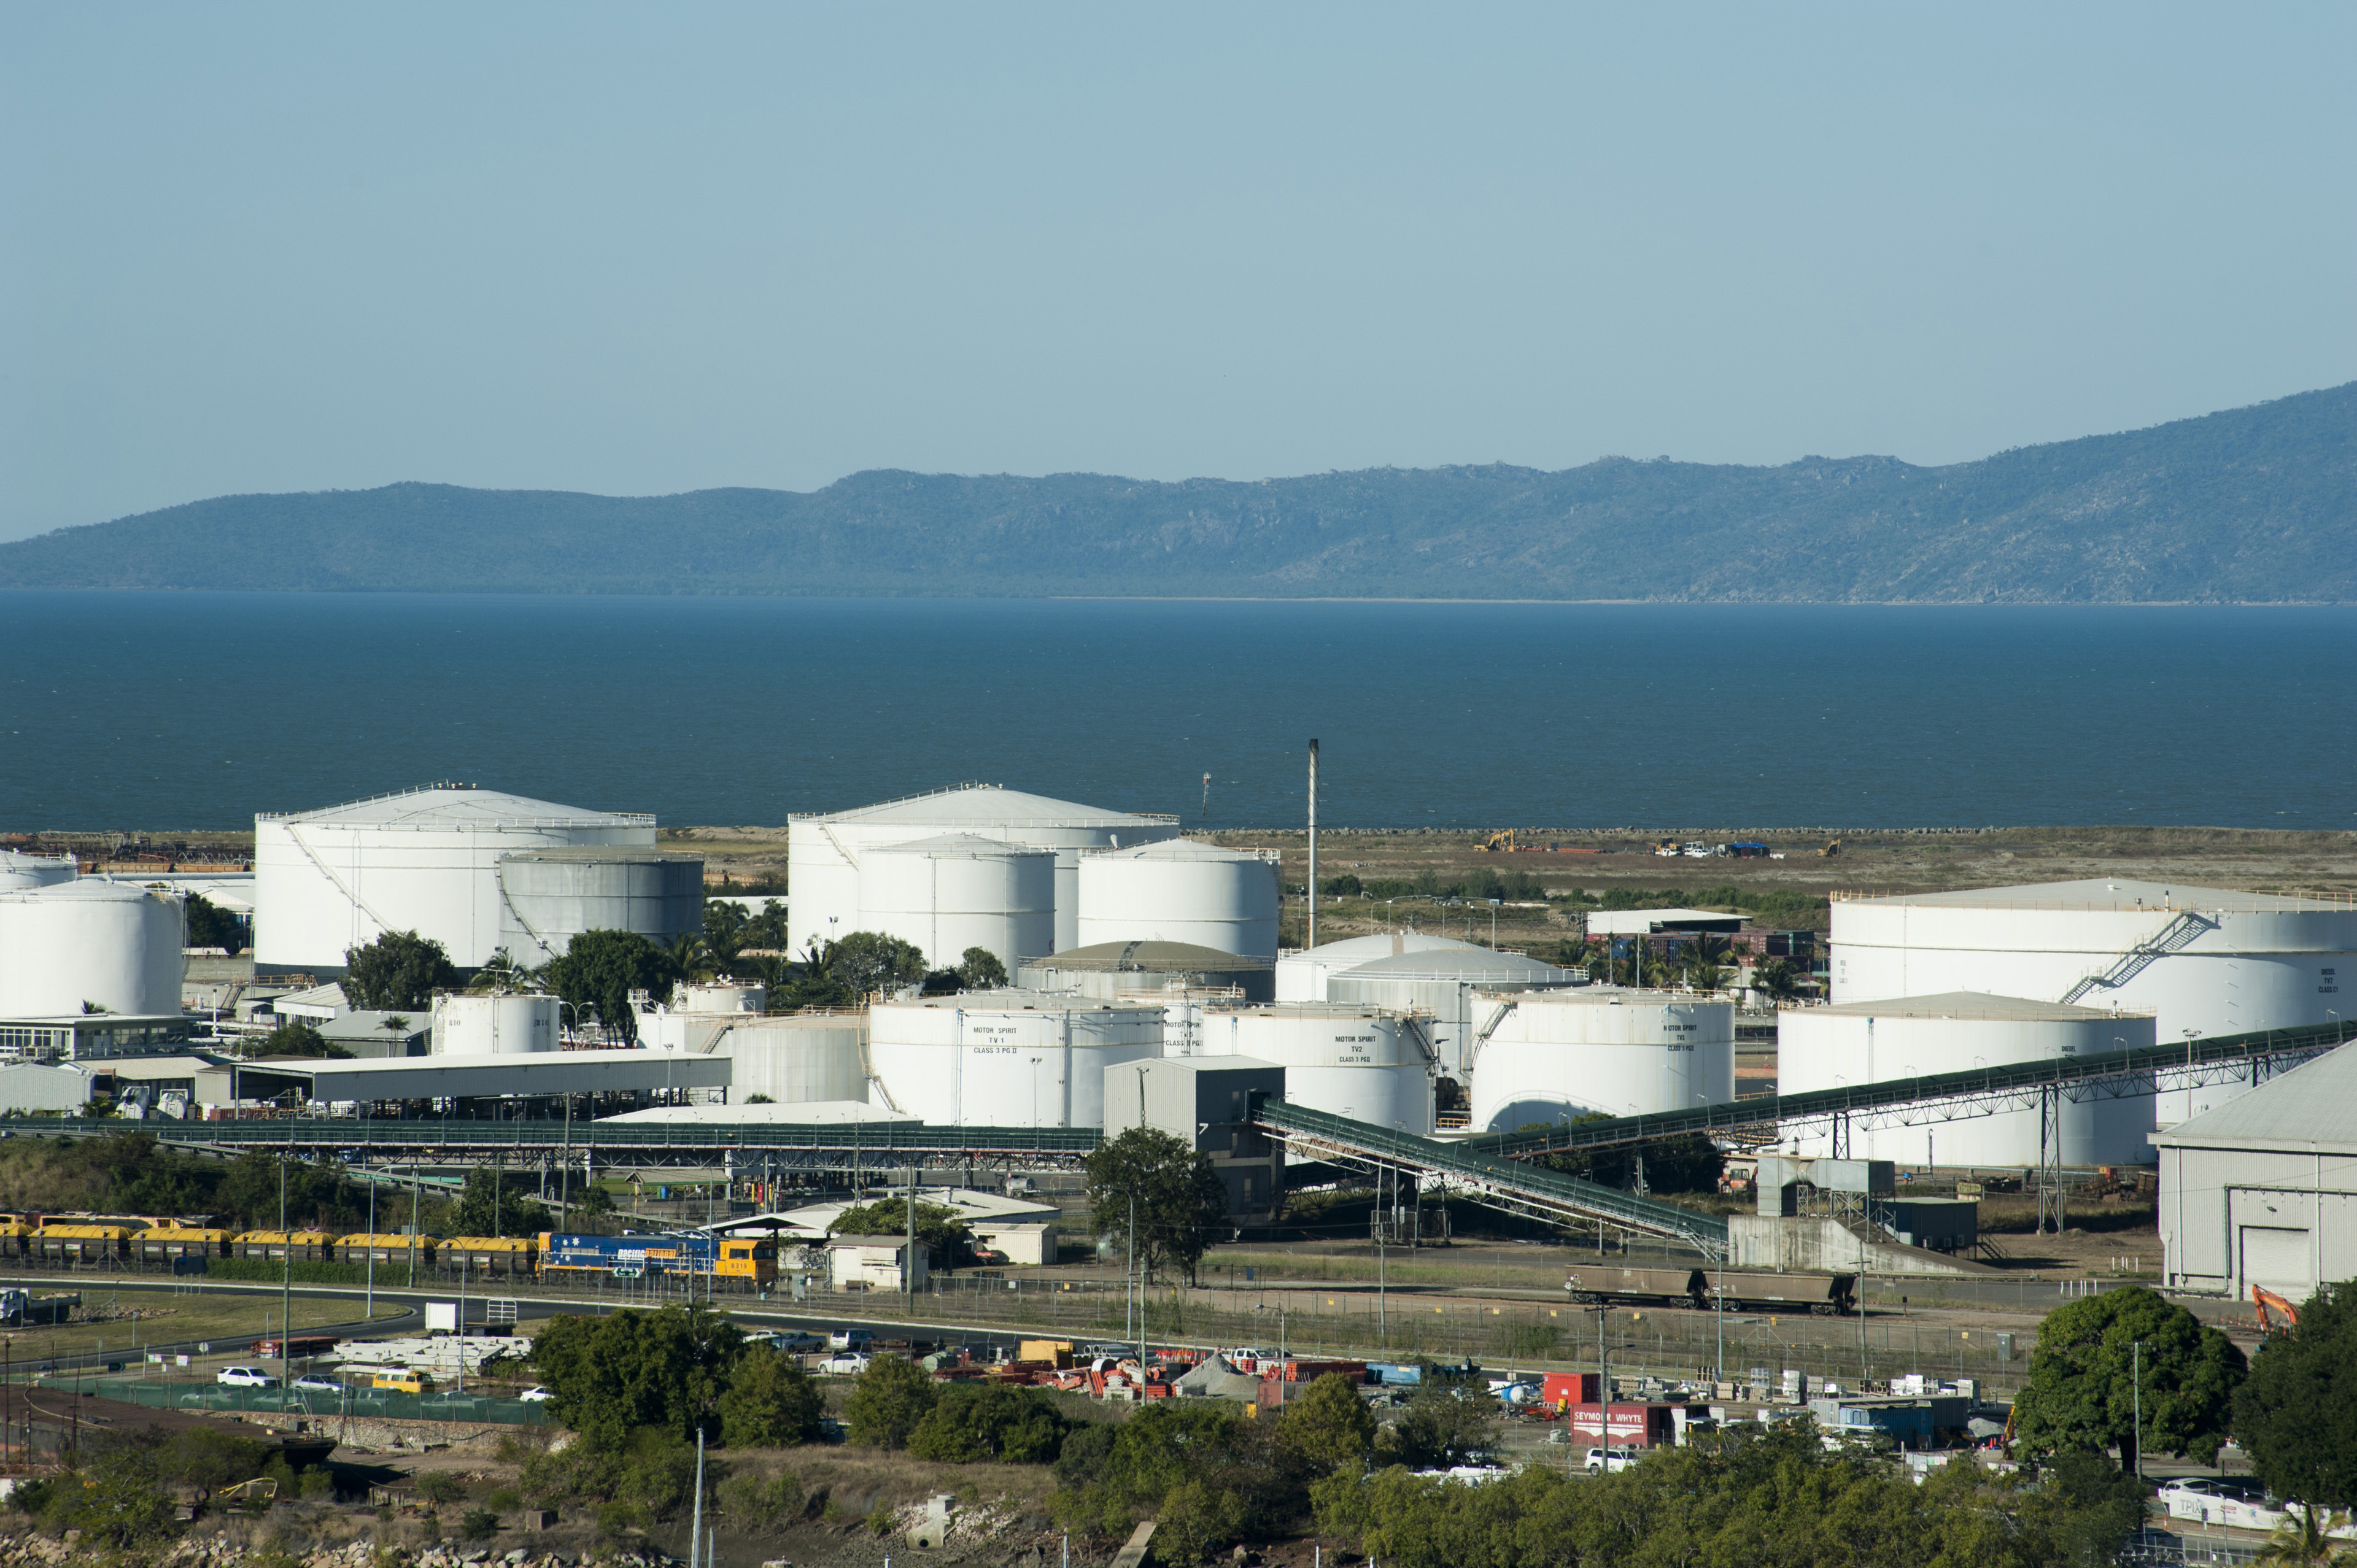 Large cylindrical storage tanks at a coastal industrial refinery for processing raw materials and resources